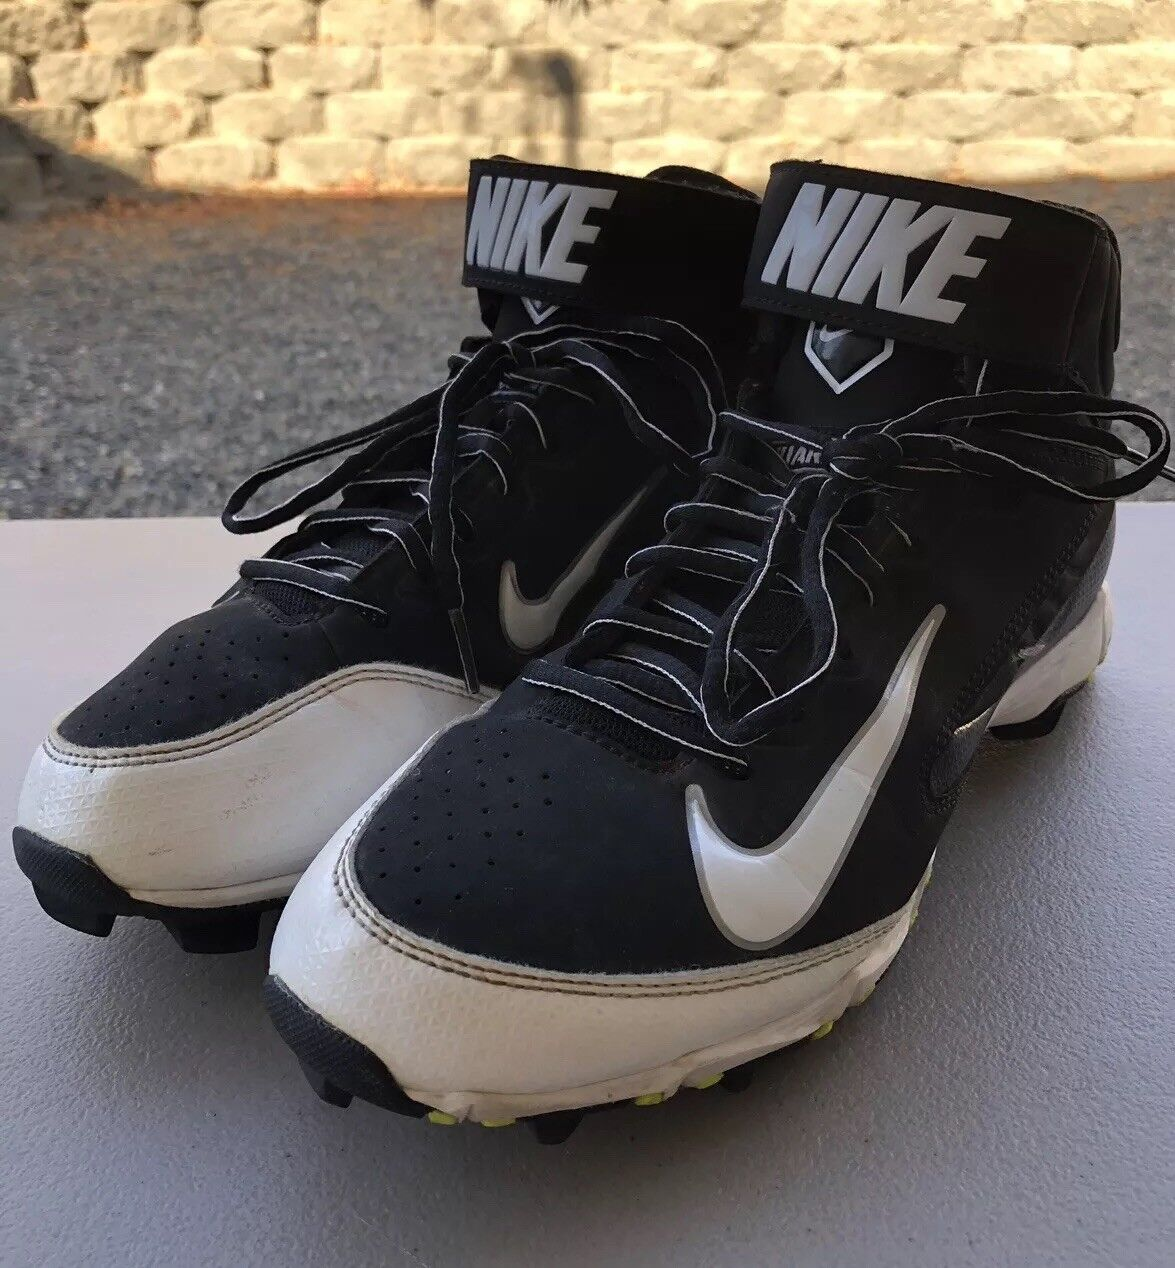 6b4f254cd60 Nike Fastflex Fastflex Fastflex Huarache Black   White Baseball Cleats Mens  US Shoe Size 8